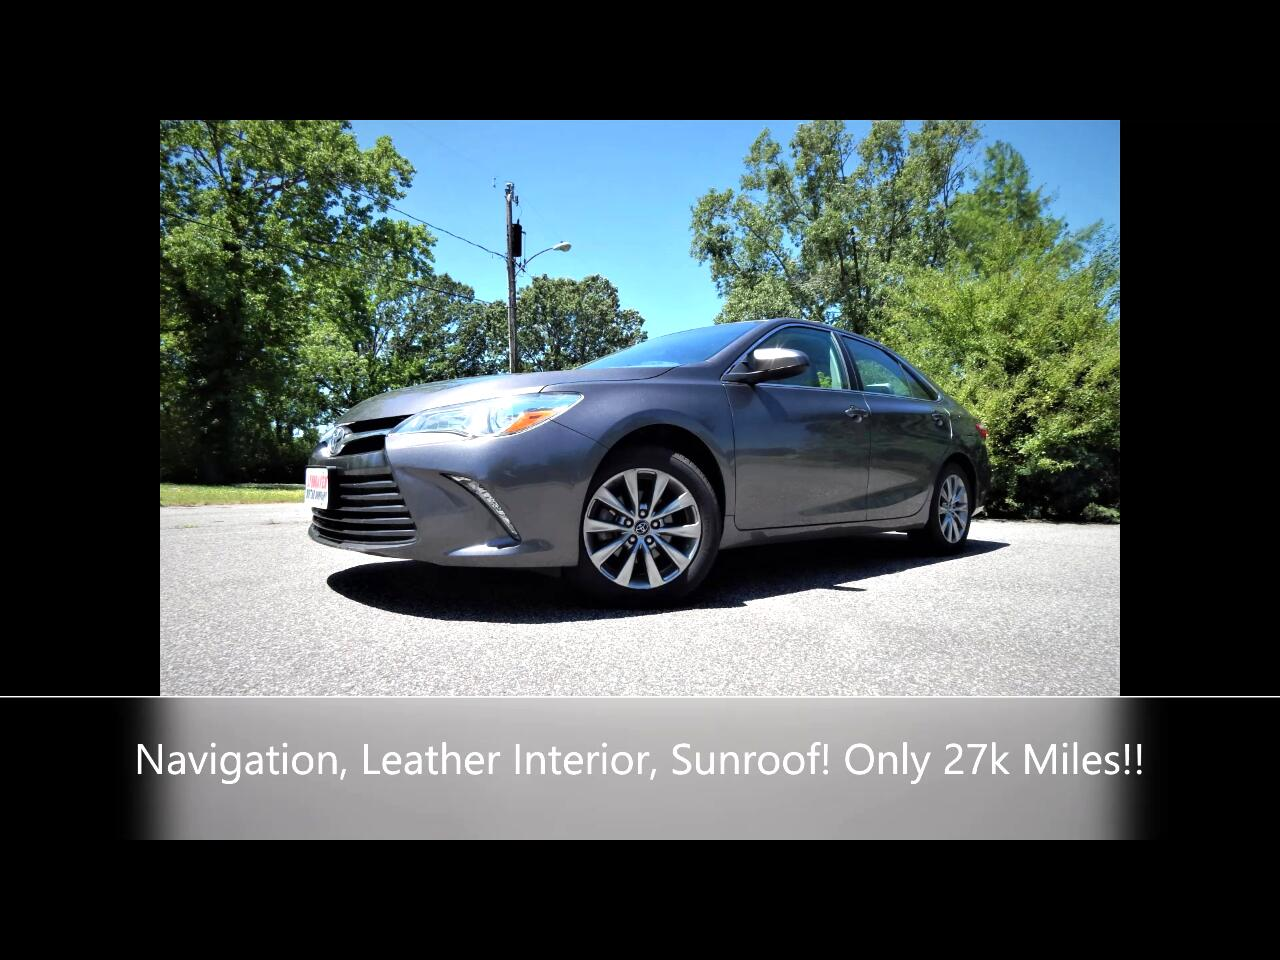 Toyota Camry 4dr Sdn I4 Auto XLE (Natl) *Ltd Avail* 2017